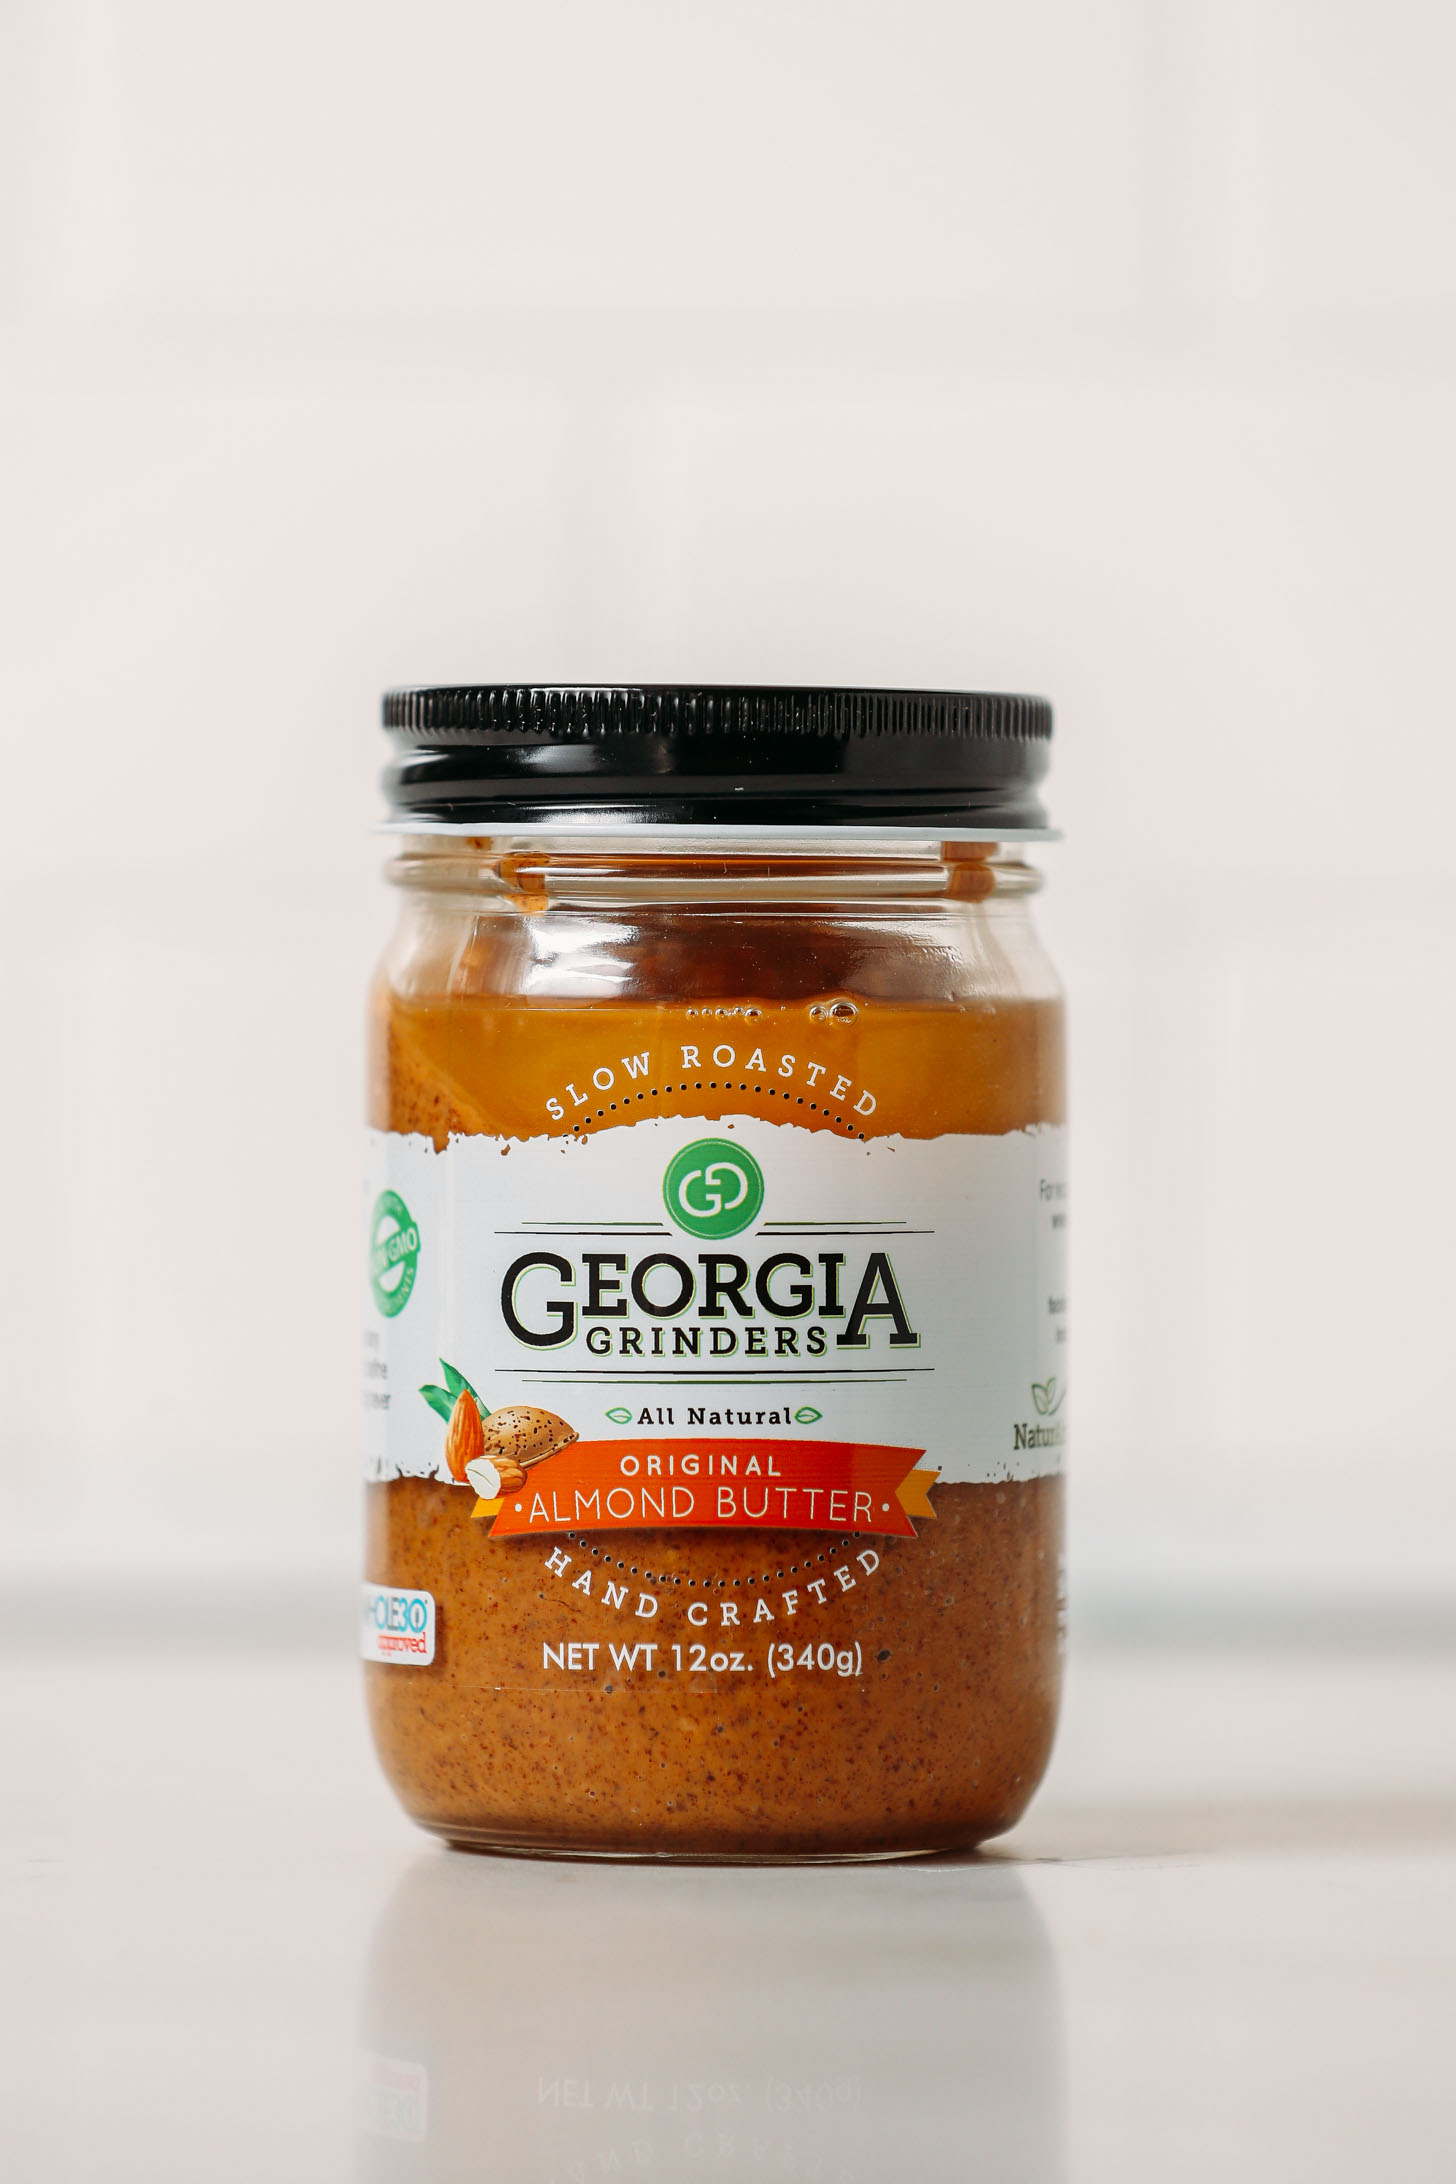 Jar of Georgia Grinders Original Almond Butter for our side by side review of popular almond butter brands